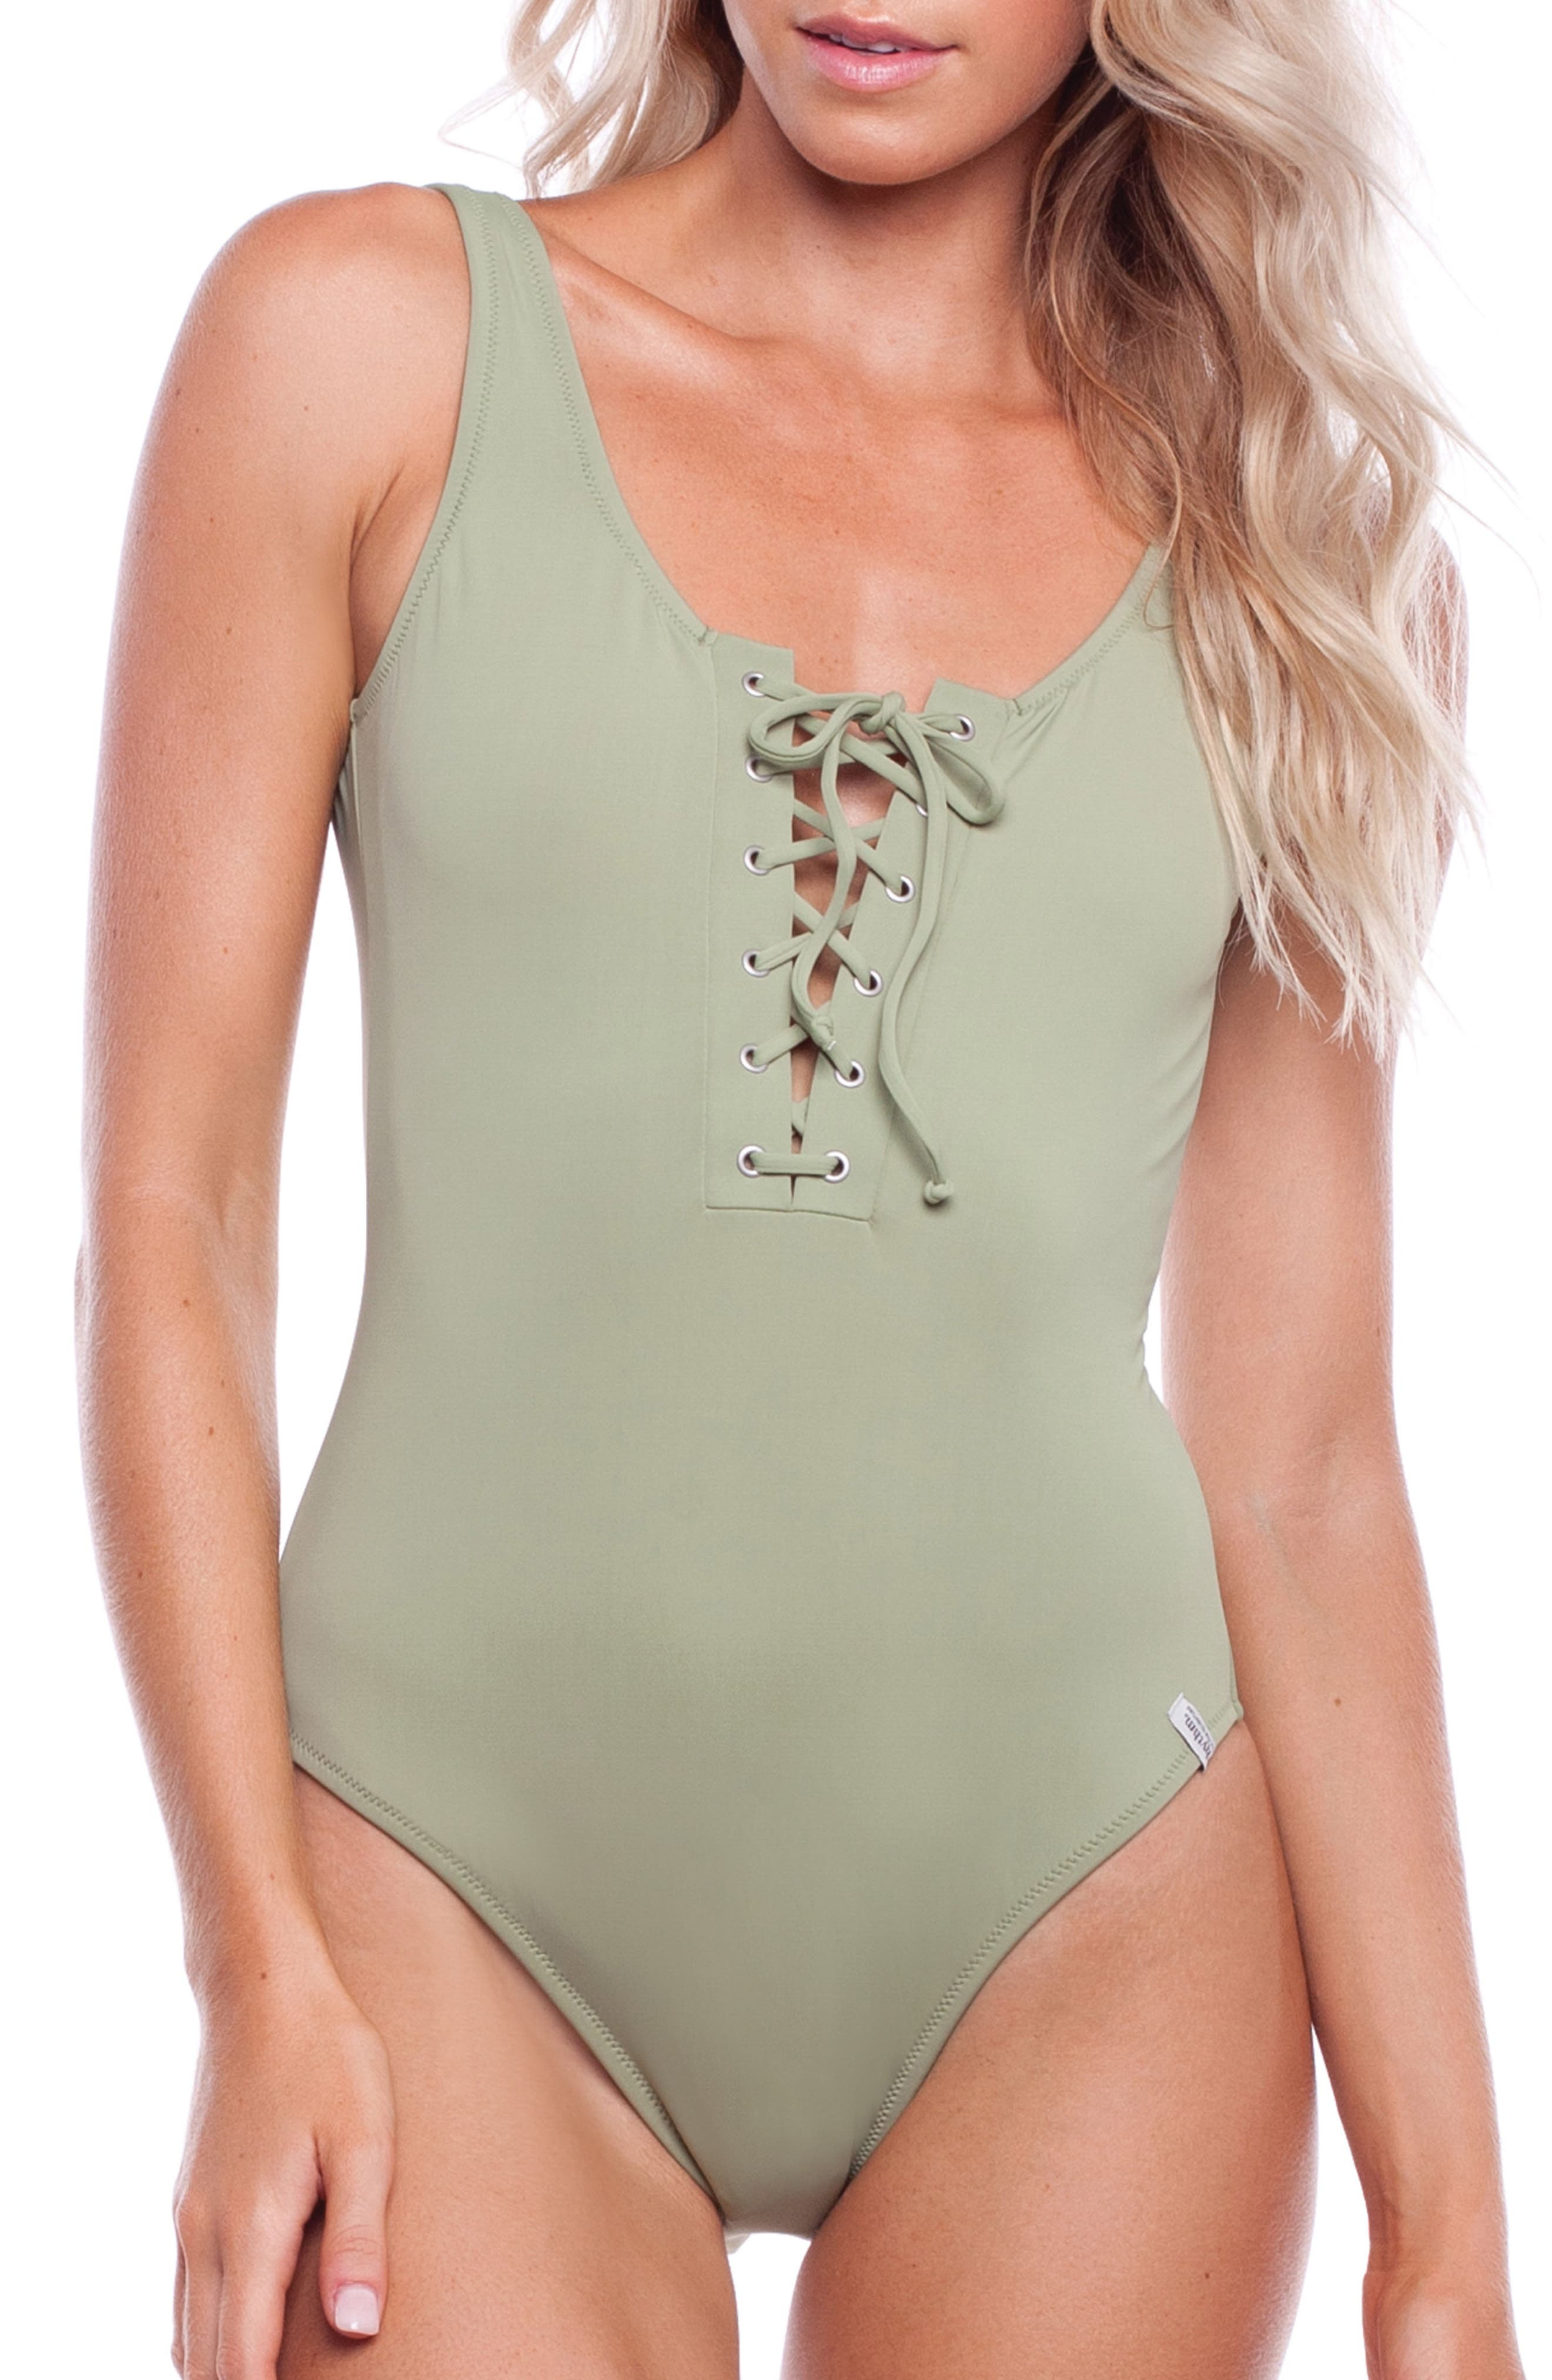 Sunchaser One-Piece Swimsuit,                         Main,                         color, PALM